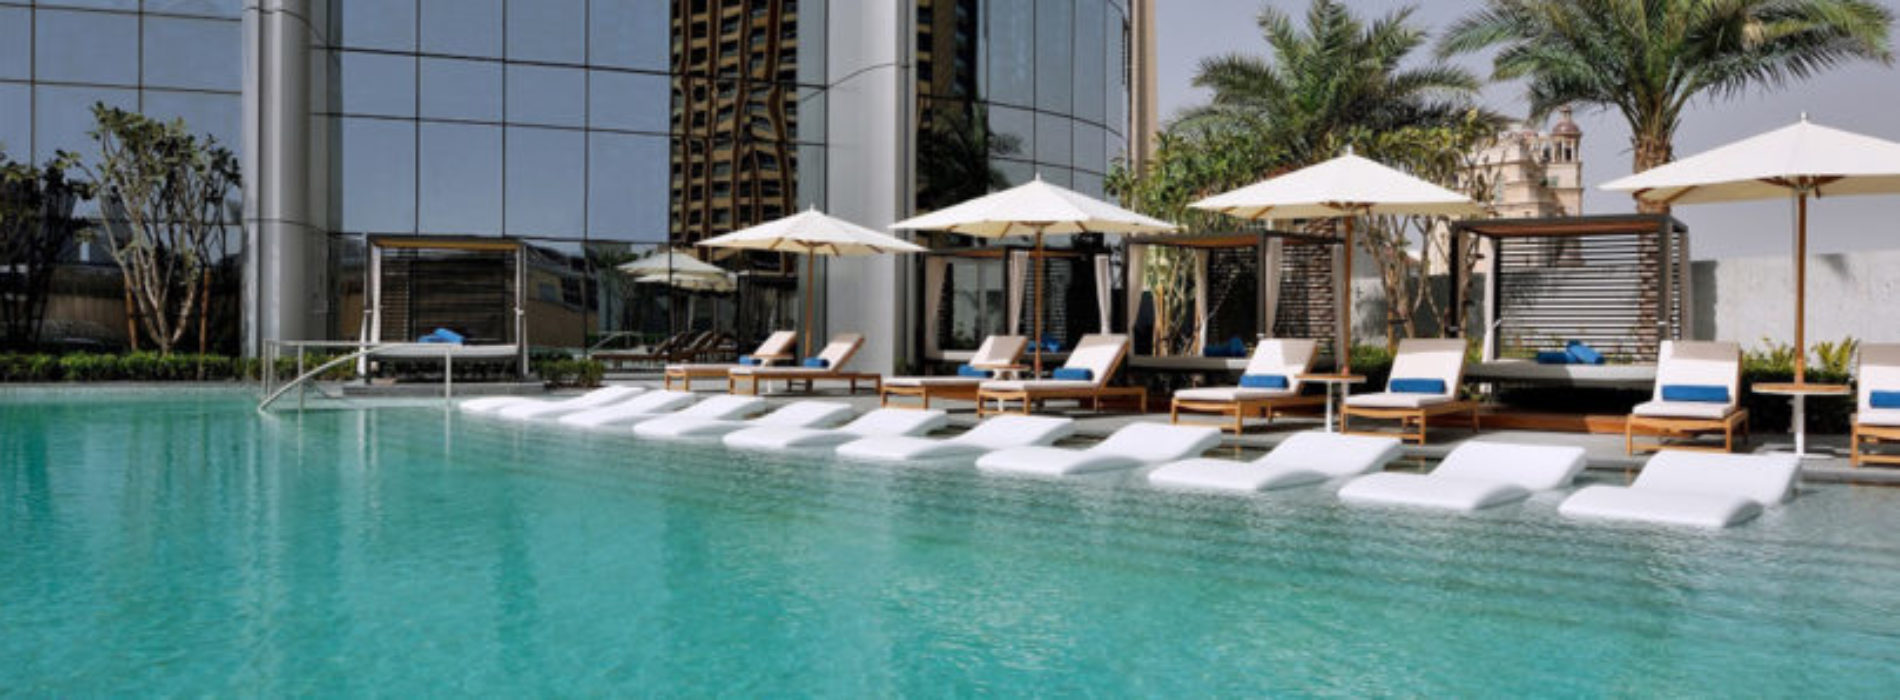 Review: The Spa, Address Boulevard